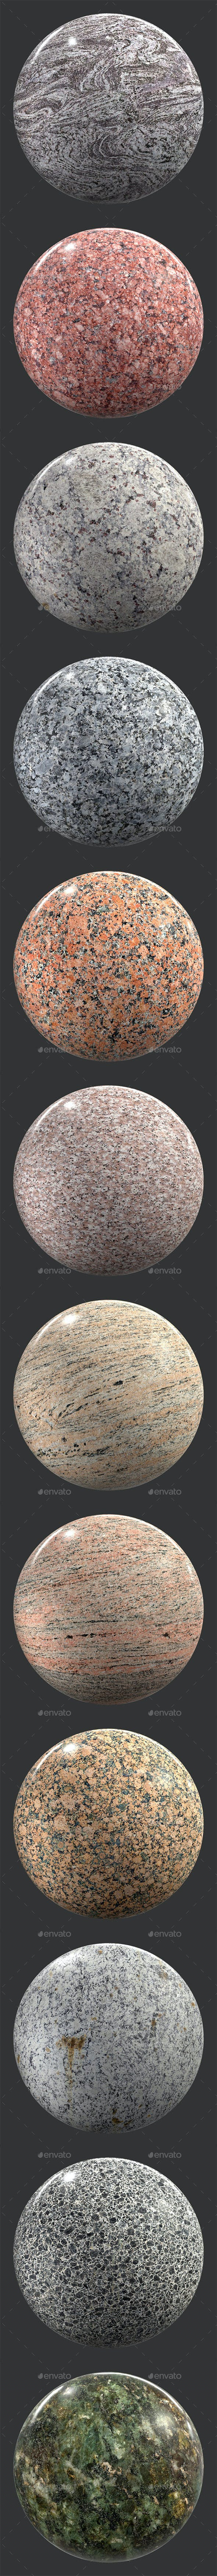 Stone gray and red 6K Texture set 12 items - 3DOcean Item for Sale